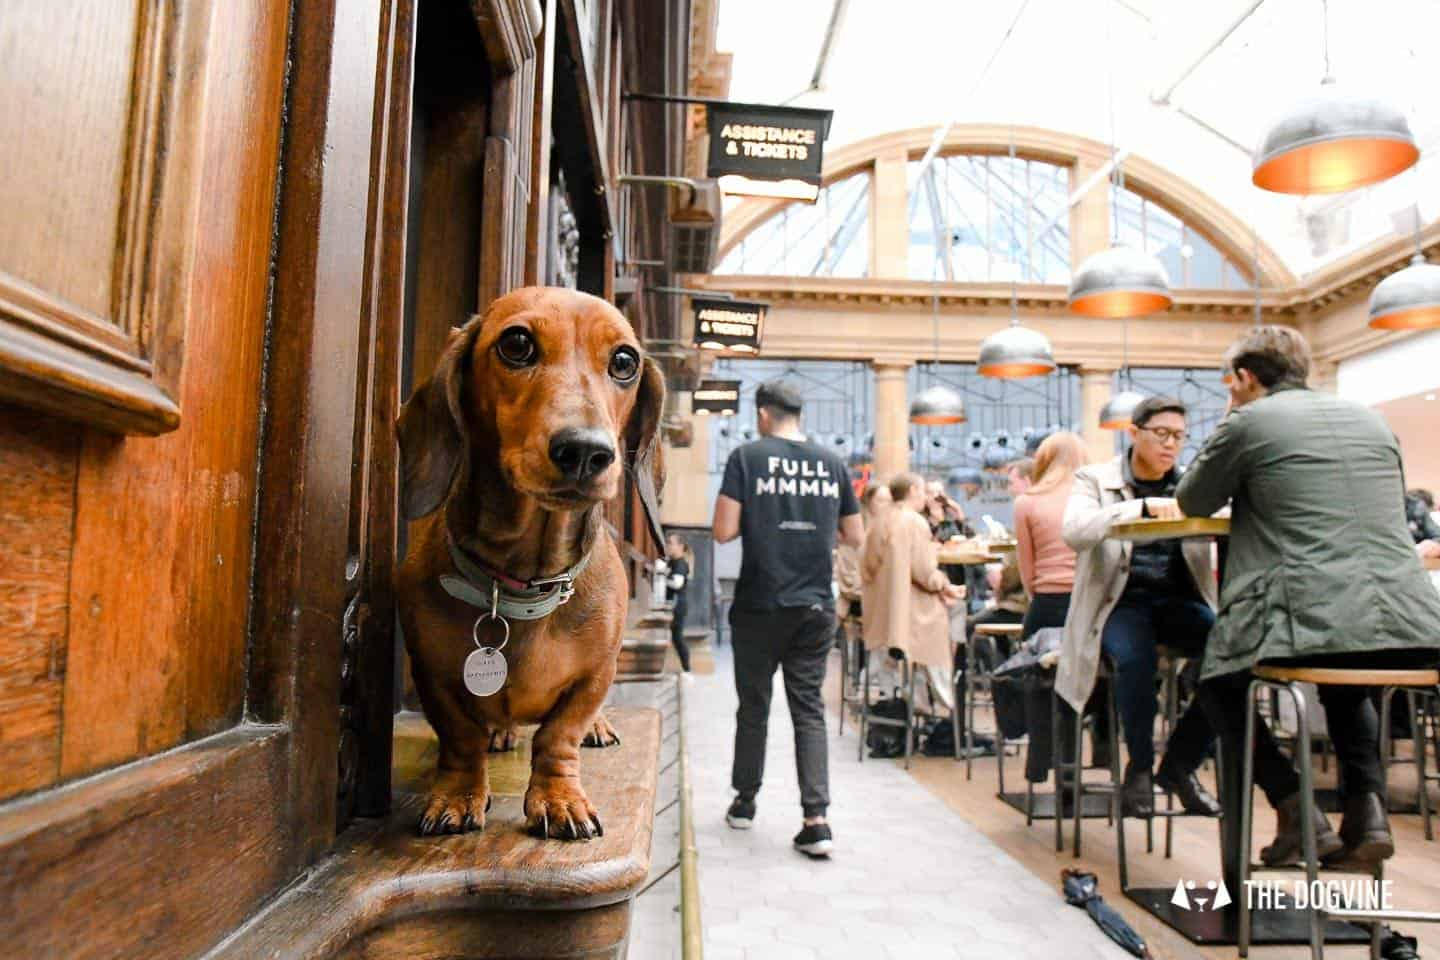 Best Dog-friendly Street Food Markets and Halls in London - Market Hall Fulham Train Station